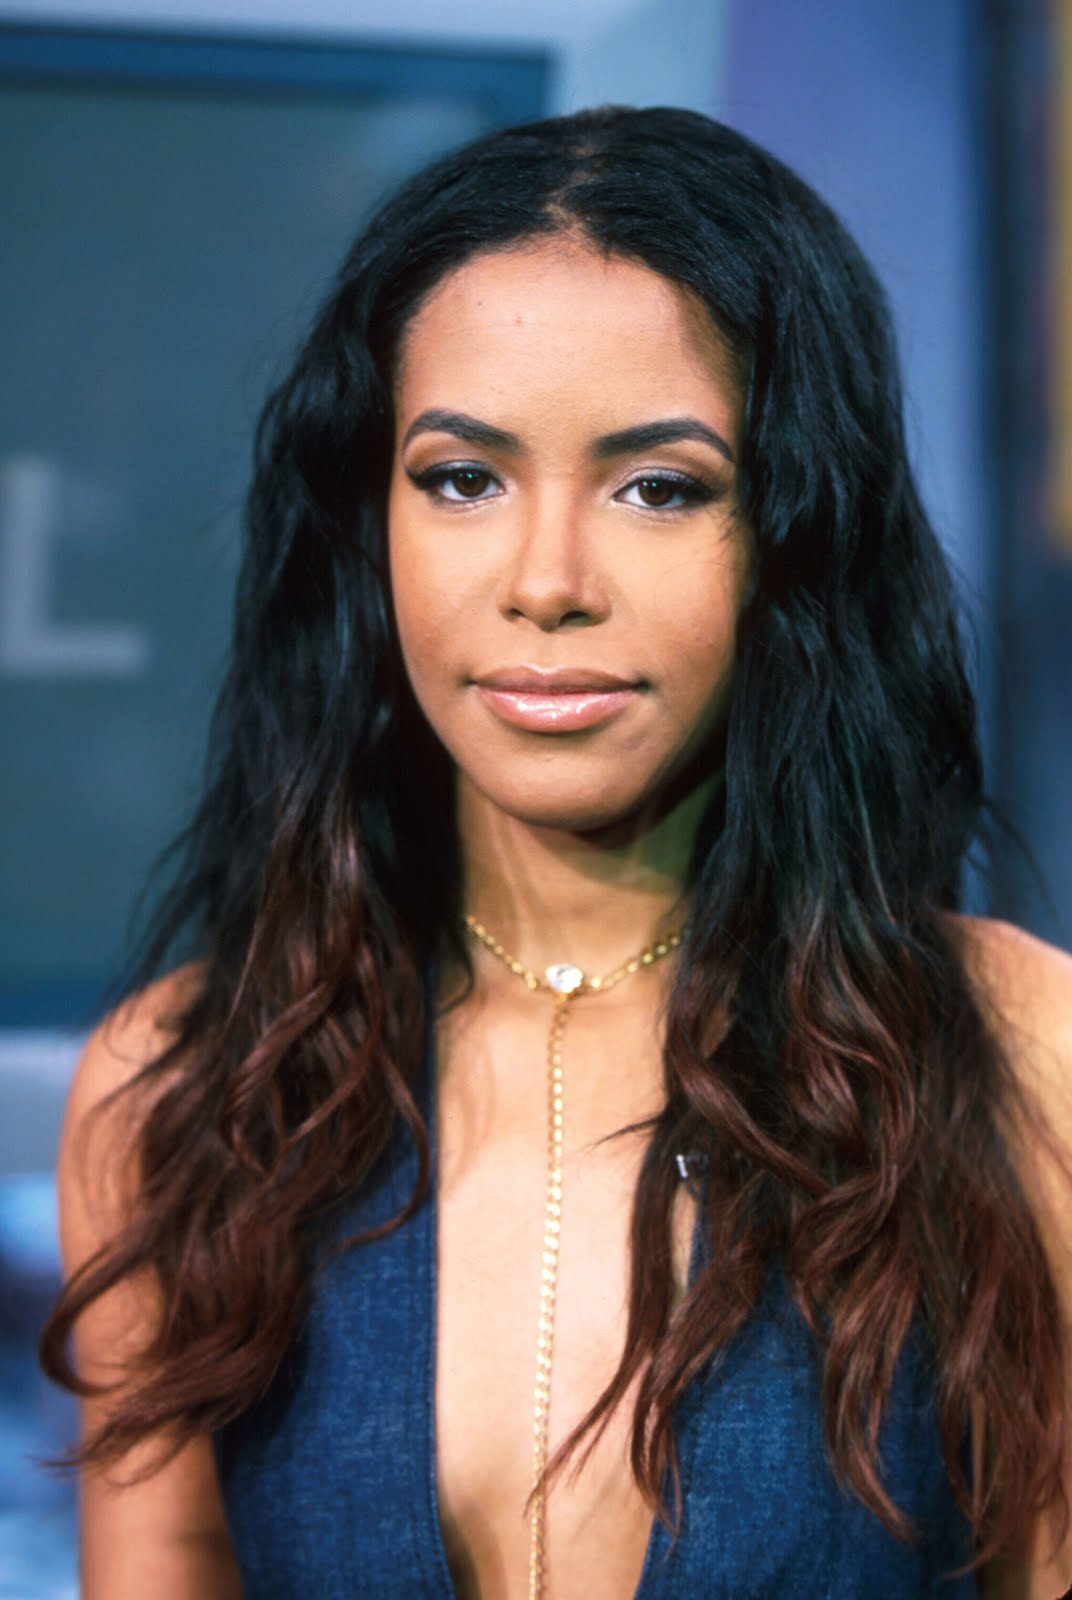 Drakes Letter To Aaliyah Welcome to Linda Ikejis Blog - 27 Piece Hairstyles For Black People